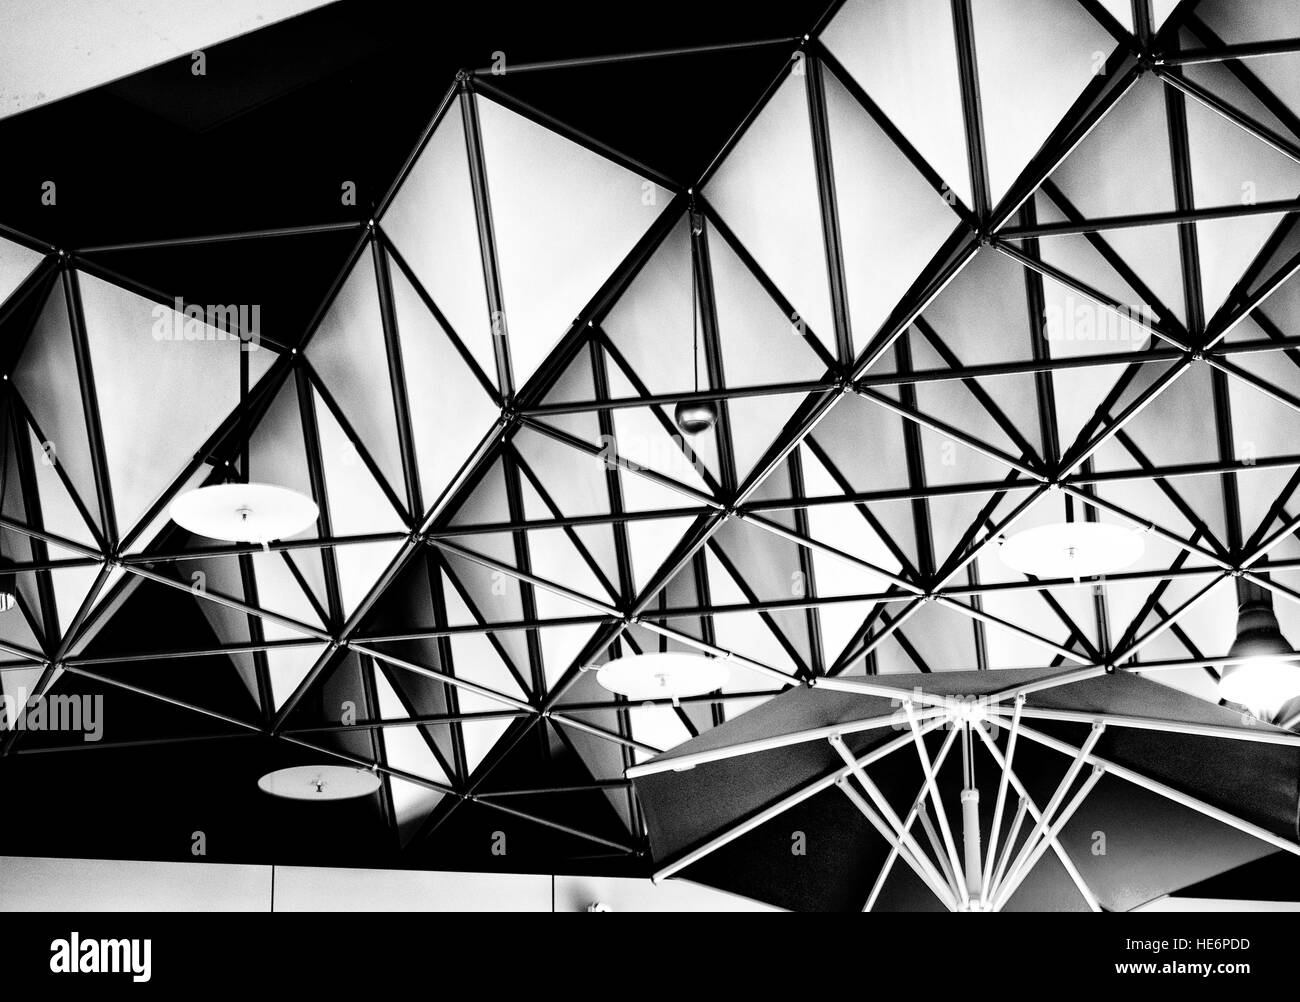 Detail of architectural structures in black and white stock photo detail of architectural structures in black and white publicscrutiny Images